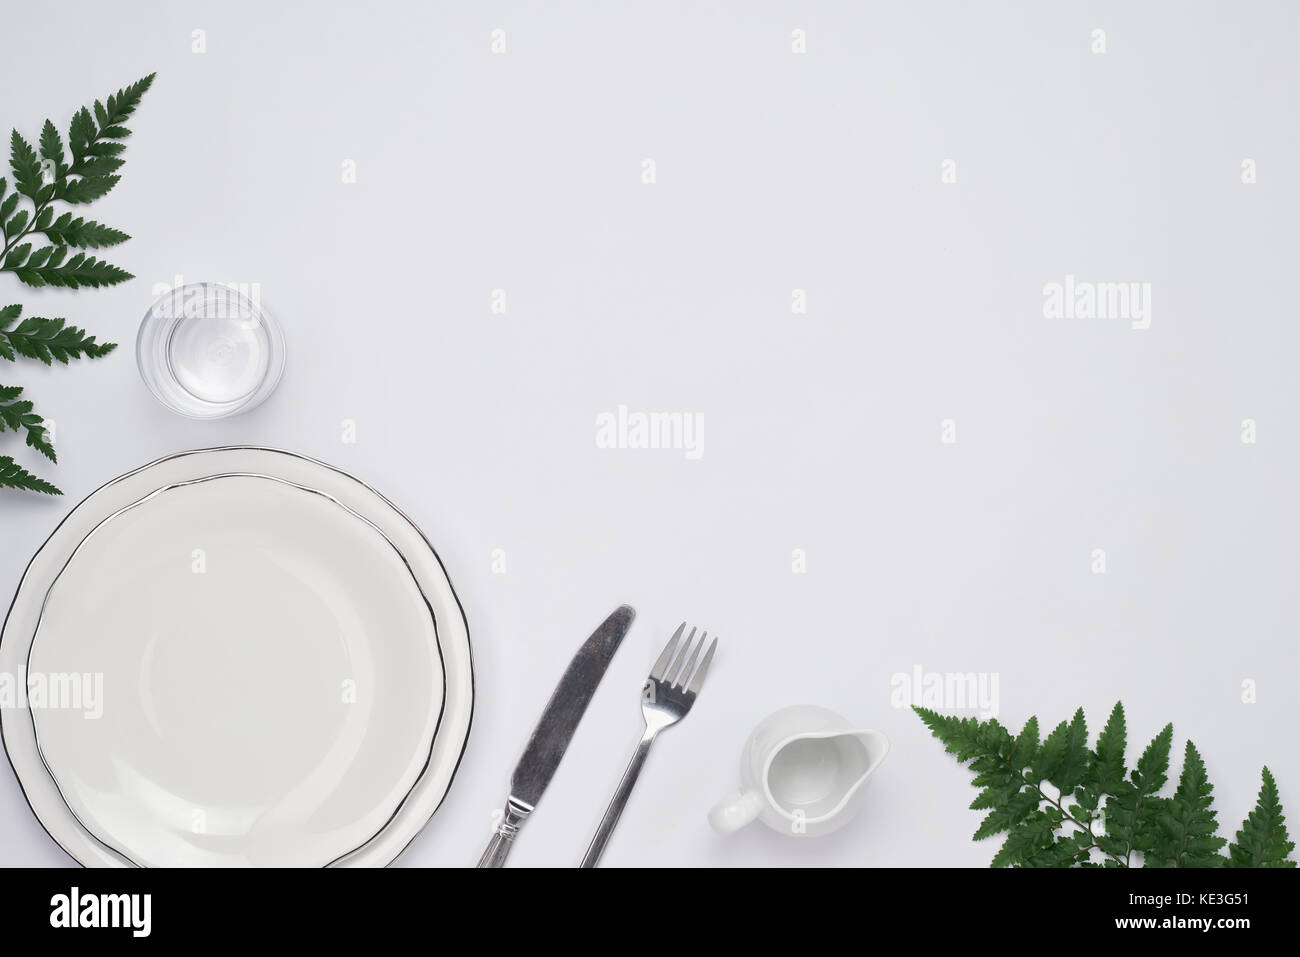 Dinner plate setting top view. Empty plate and silverware set on wooden table  sc 1 st  Alamy & Dinner plate setting top view. Empty plate and silverware set on ...